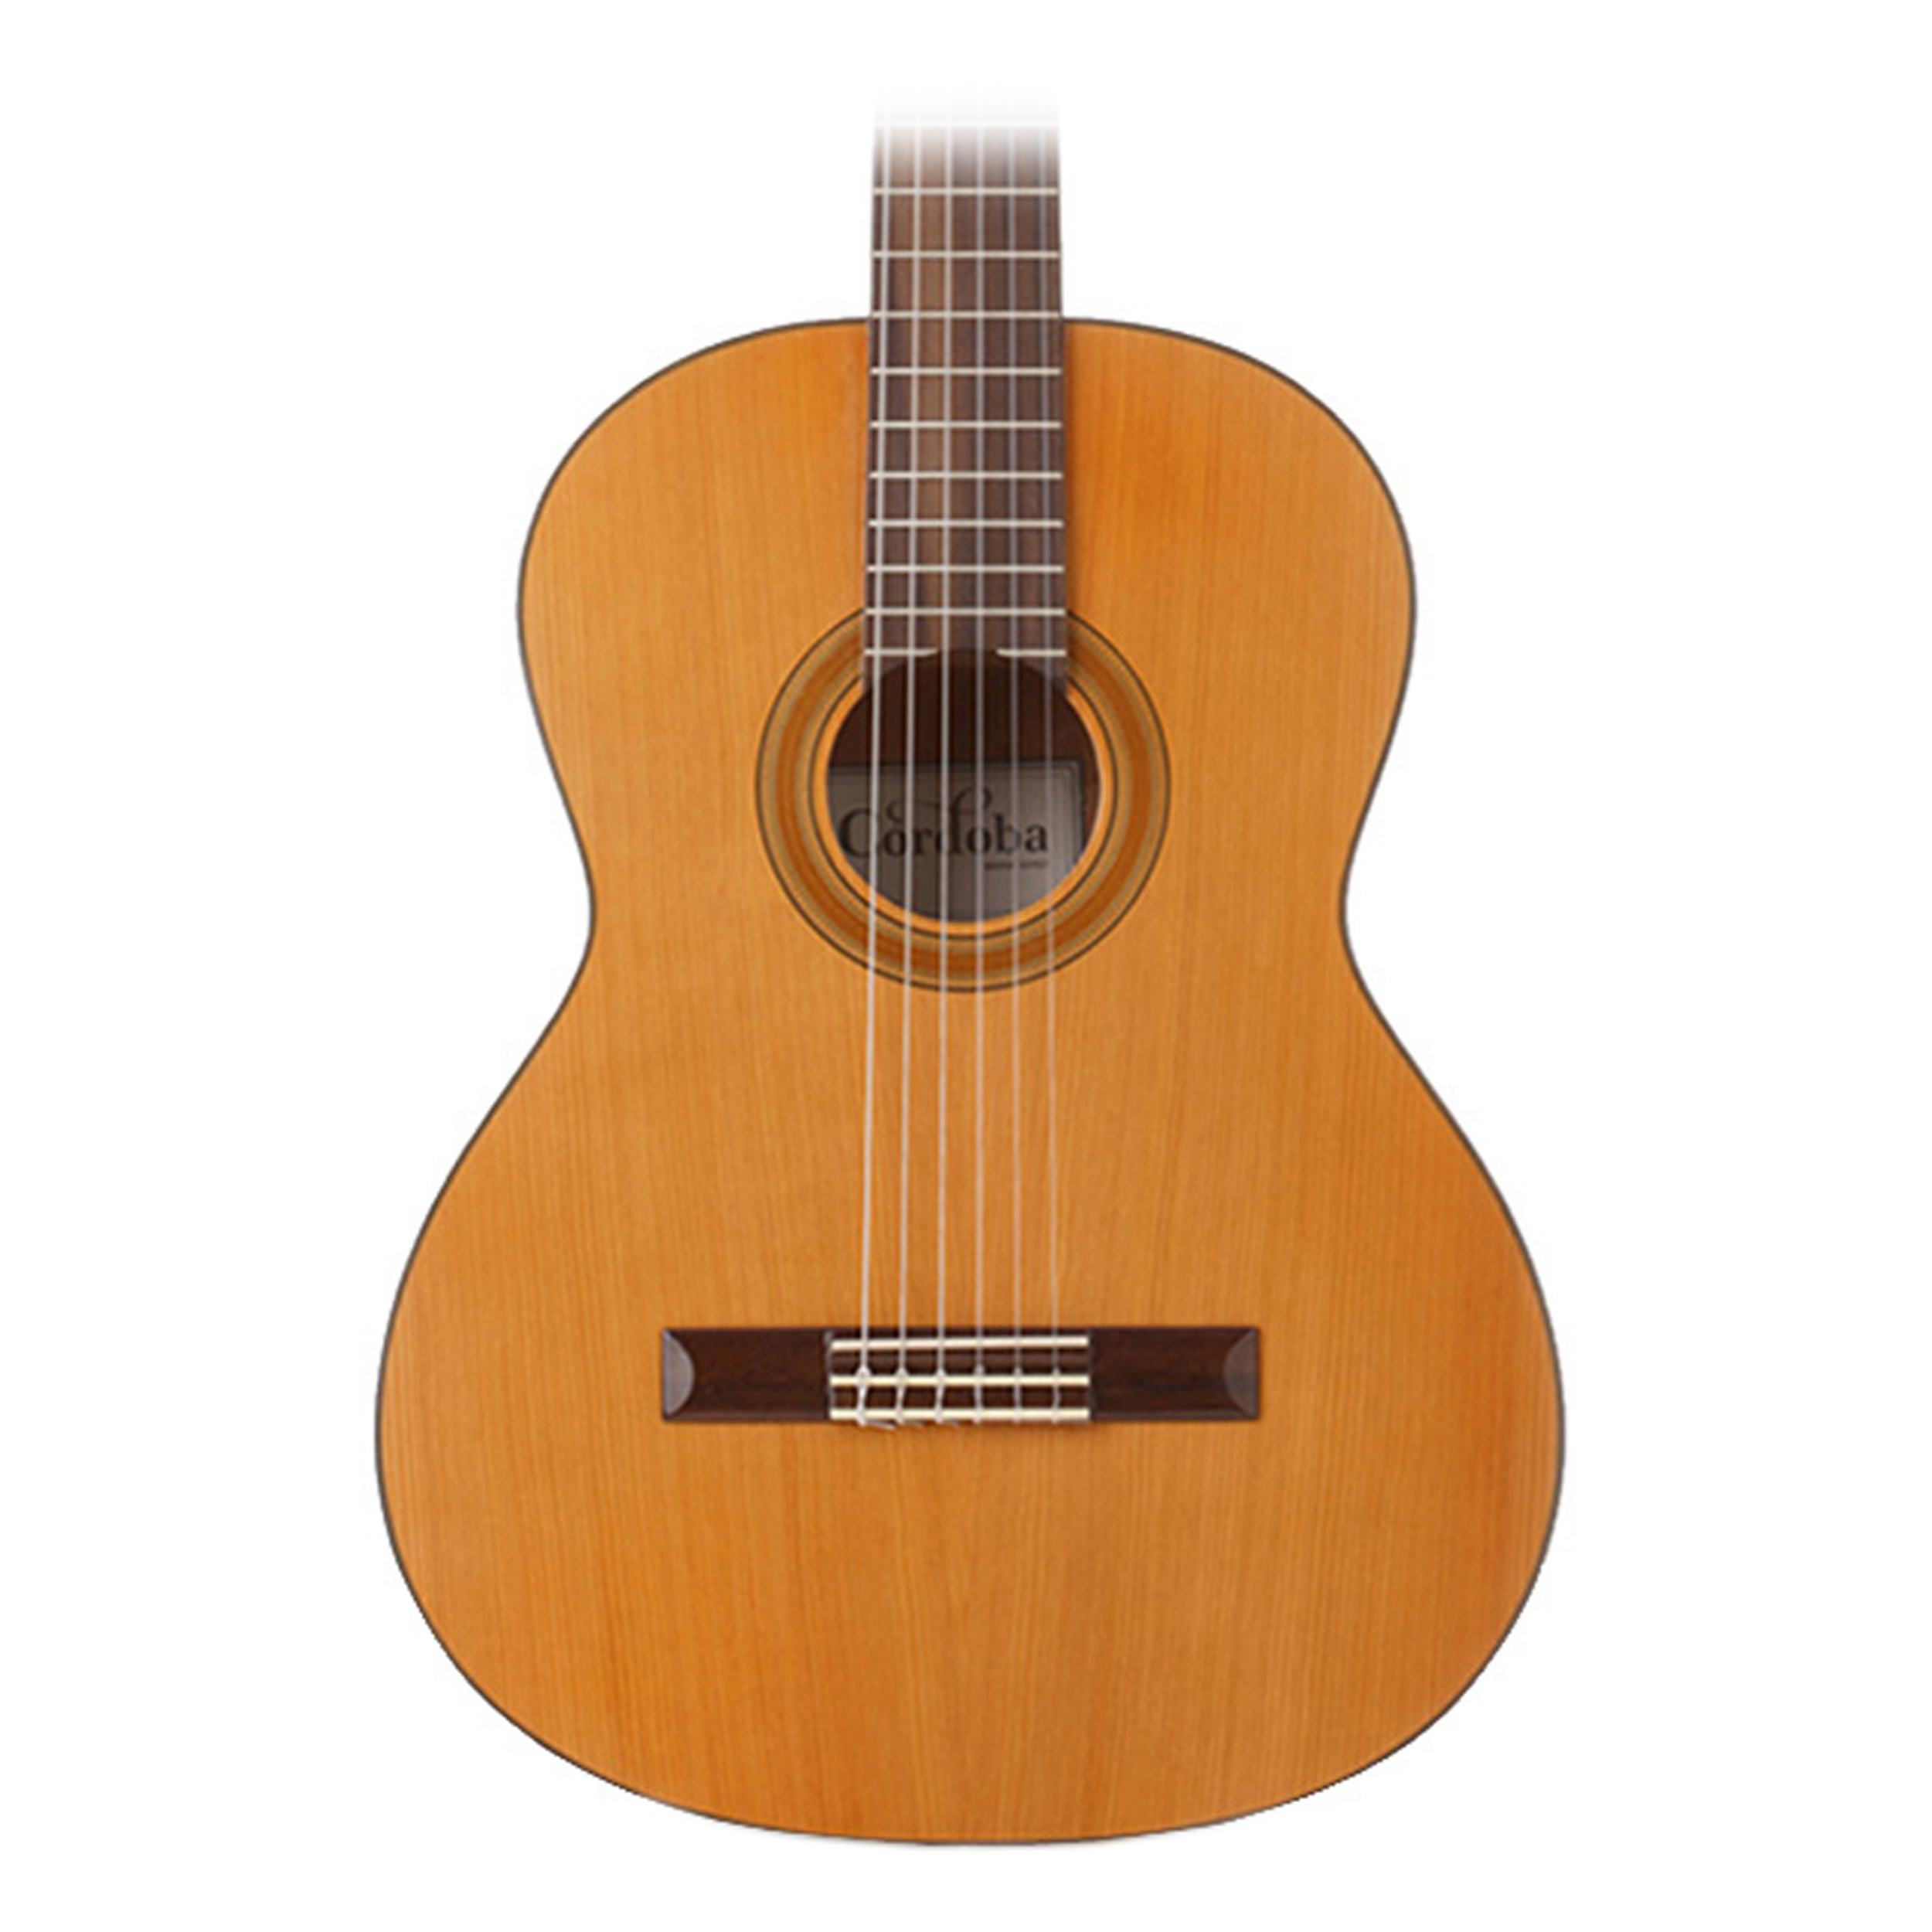 Cordoba C3m Classical Acoustic Guitar in Natural Matte Finish by Cordoba